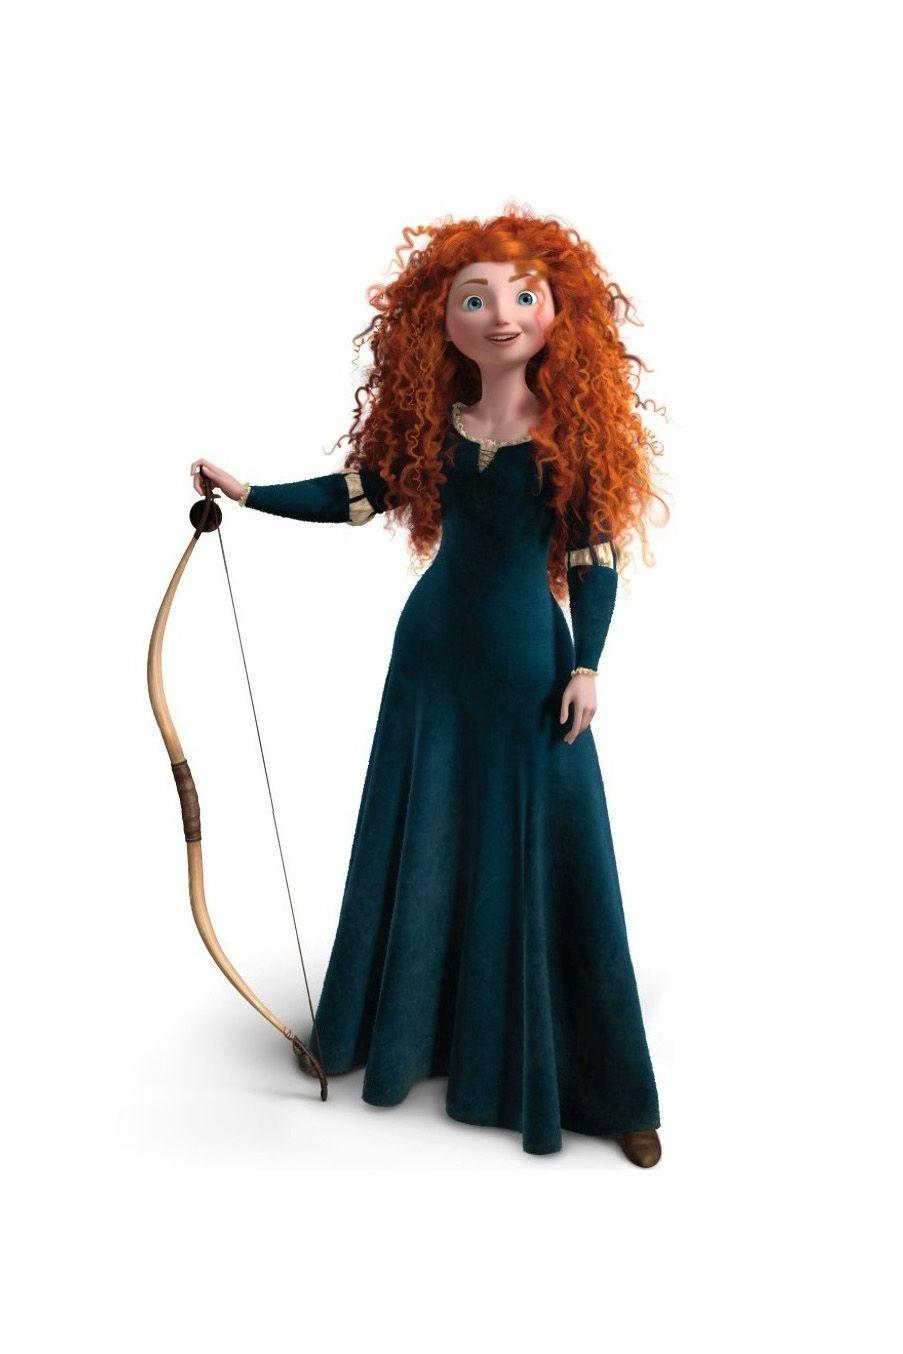 <p>Disney's 2012 animated feature <em>Brave</em> tells the story of Merida, a strong-willed princess in the Scottish Highlands.</p>